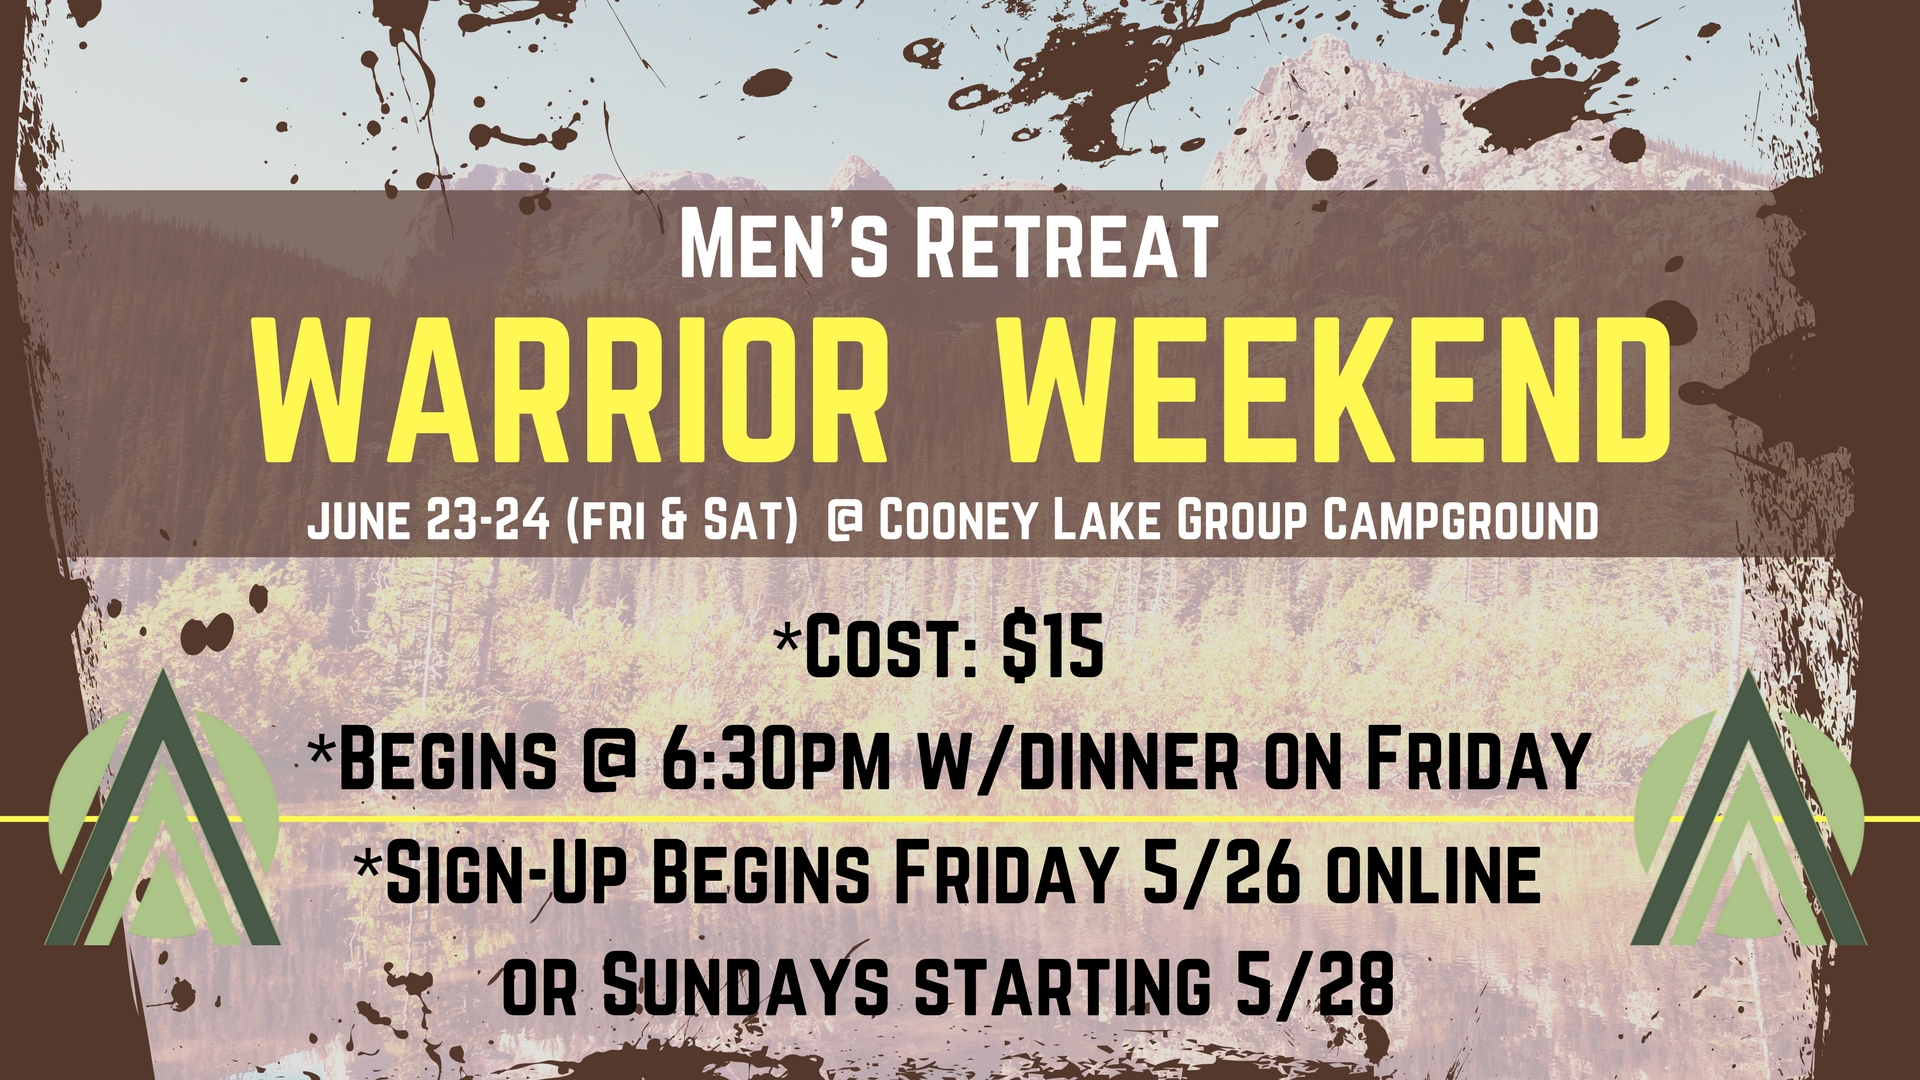 Warrior weekend